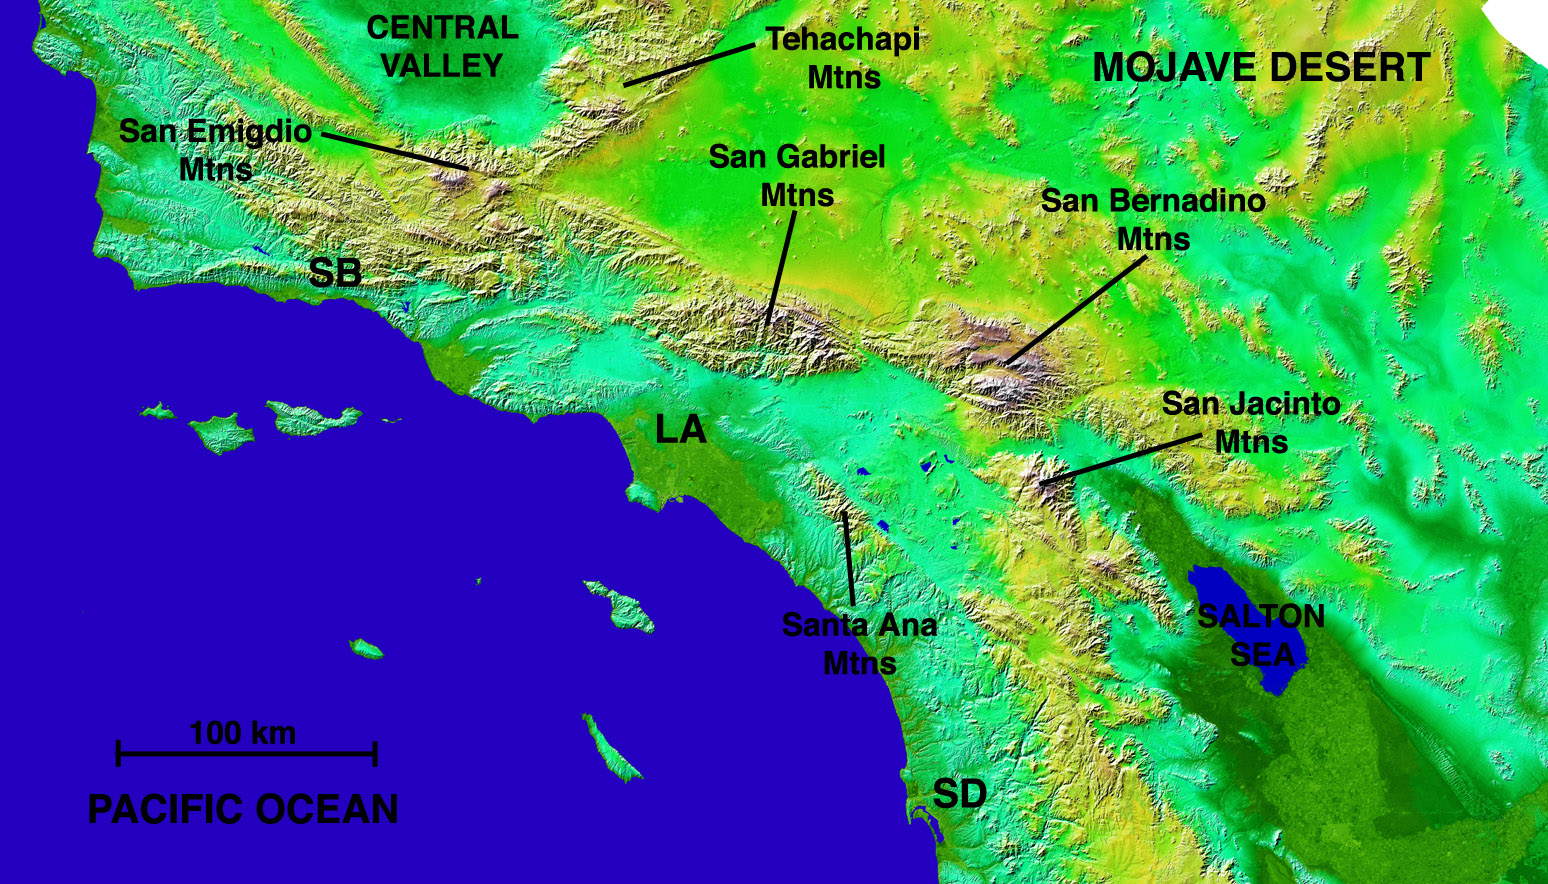 just showing the topography around los angeles it shows the various mountain ranges that surrounds the city this image is not mine